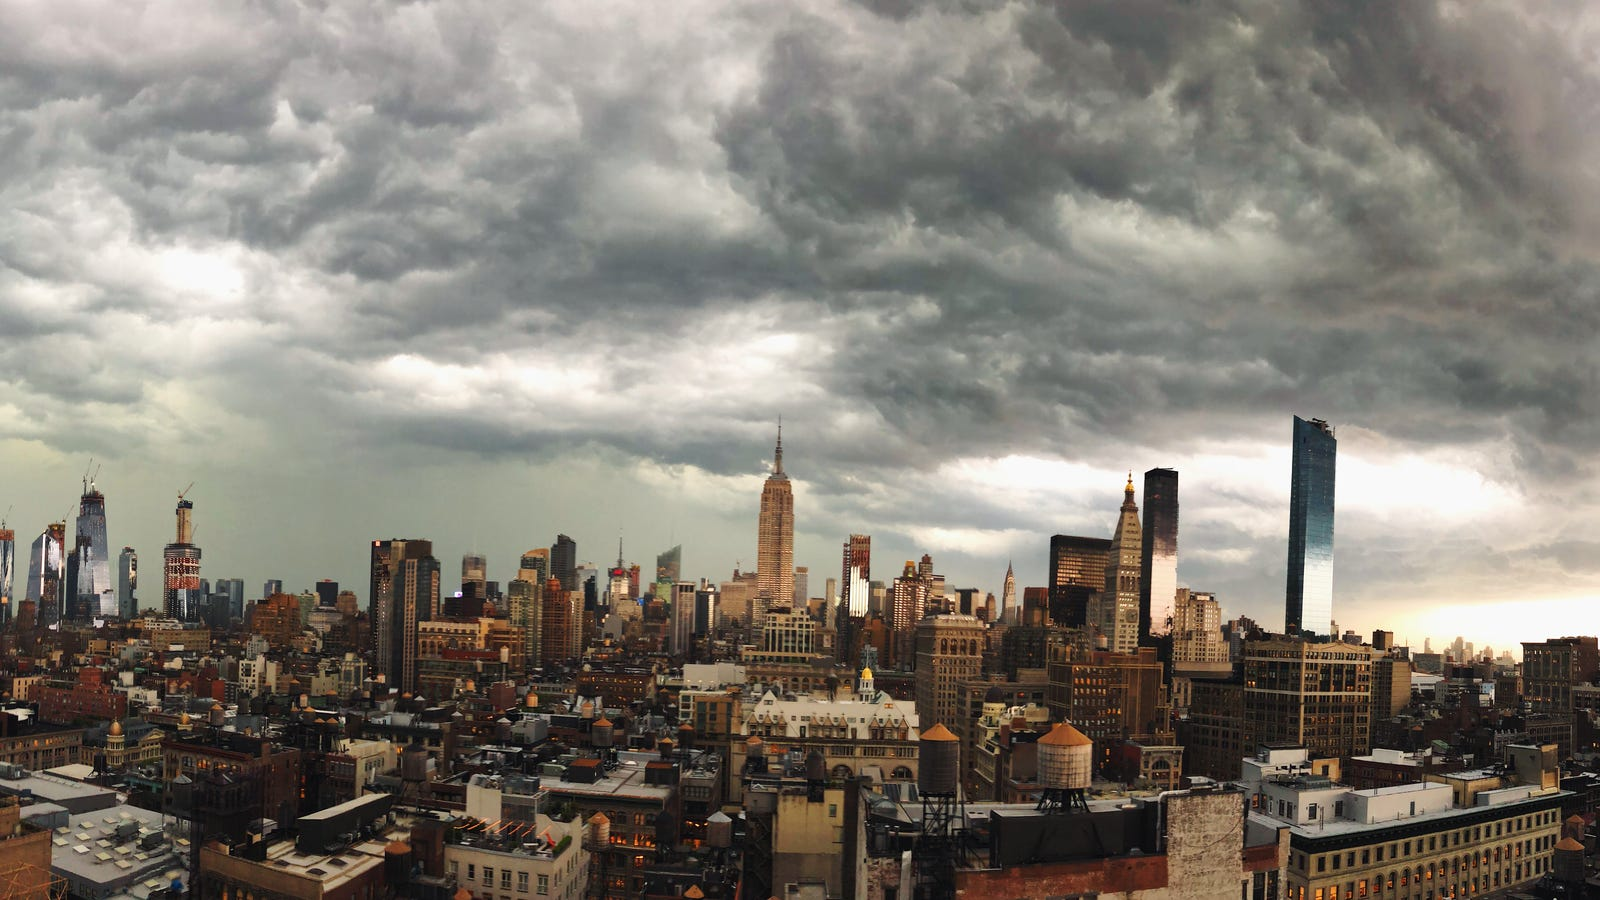 Did New York Just Get Hit By a Derecho?